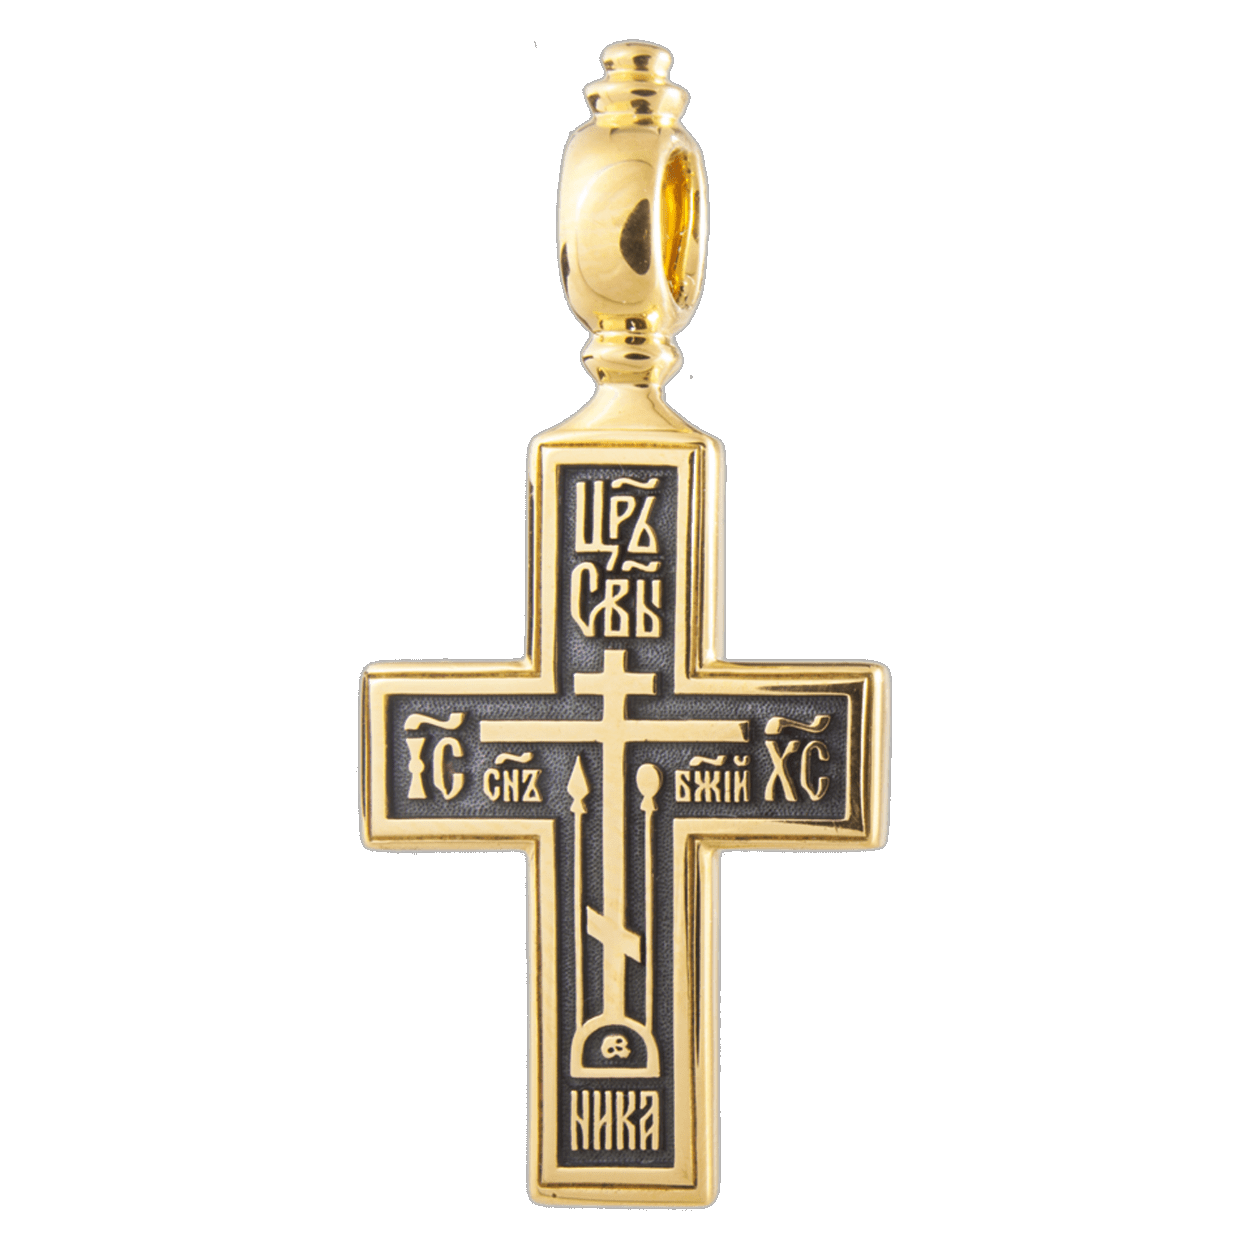 KS109_A-Russian-Orthodox-Old-Believers-silver-cross-pendant-CROSS-OF-CALVARY-PRAYER-TO-THE-HOLY-CROSS-Master-Jeweler-Fedorov-min (1)-min